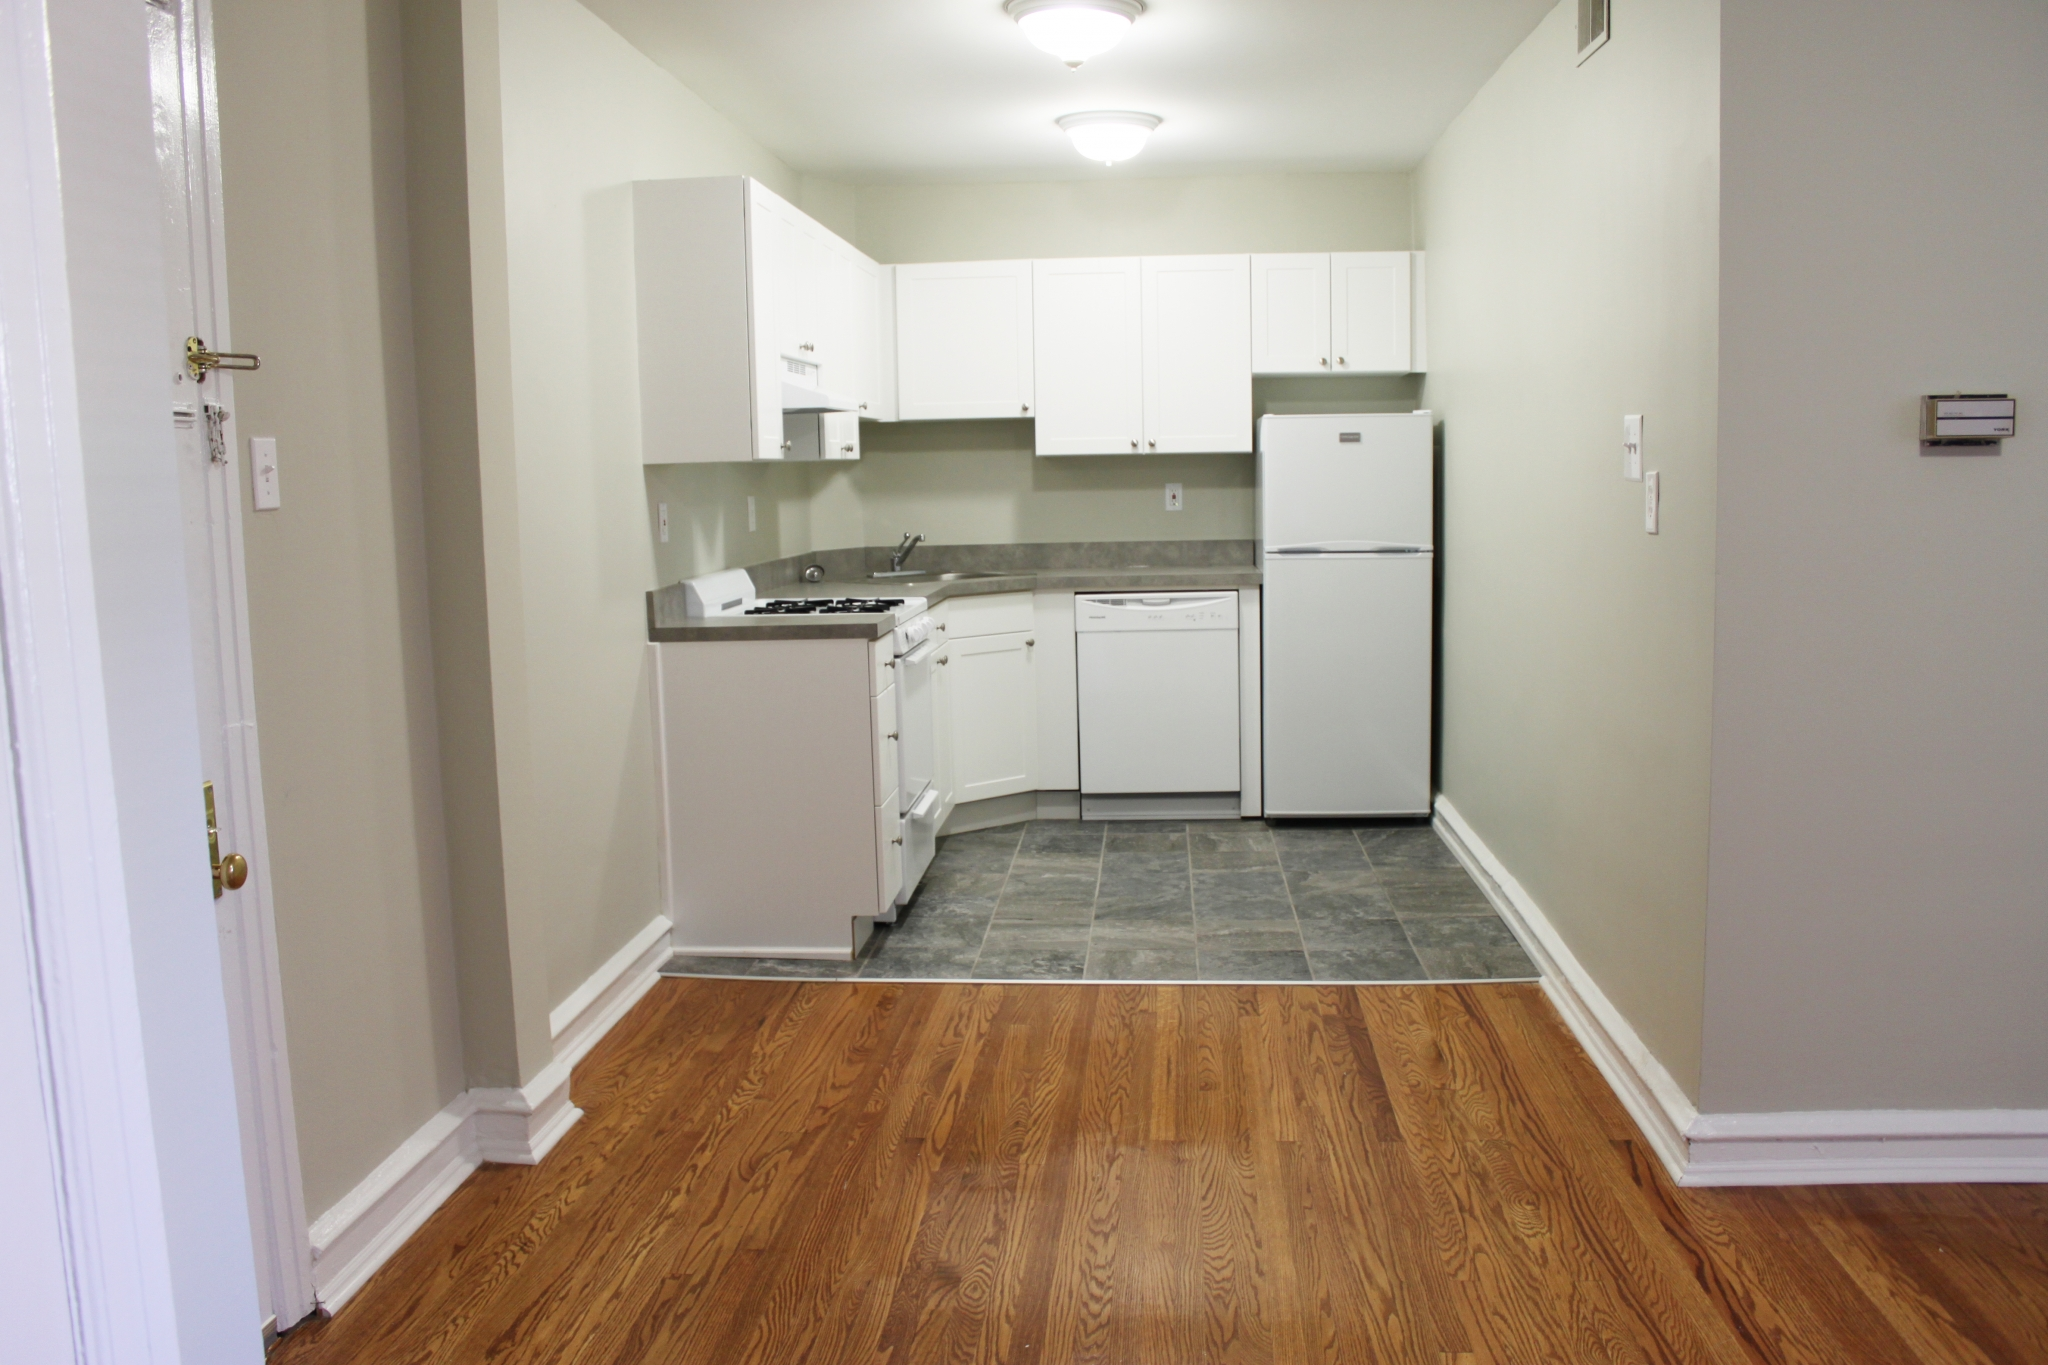 Luxurious Kitchen | Apartment Homes in Ardmore, PA | Suburban Court Apartments